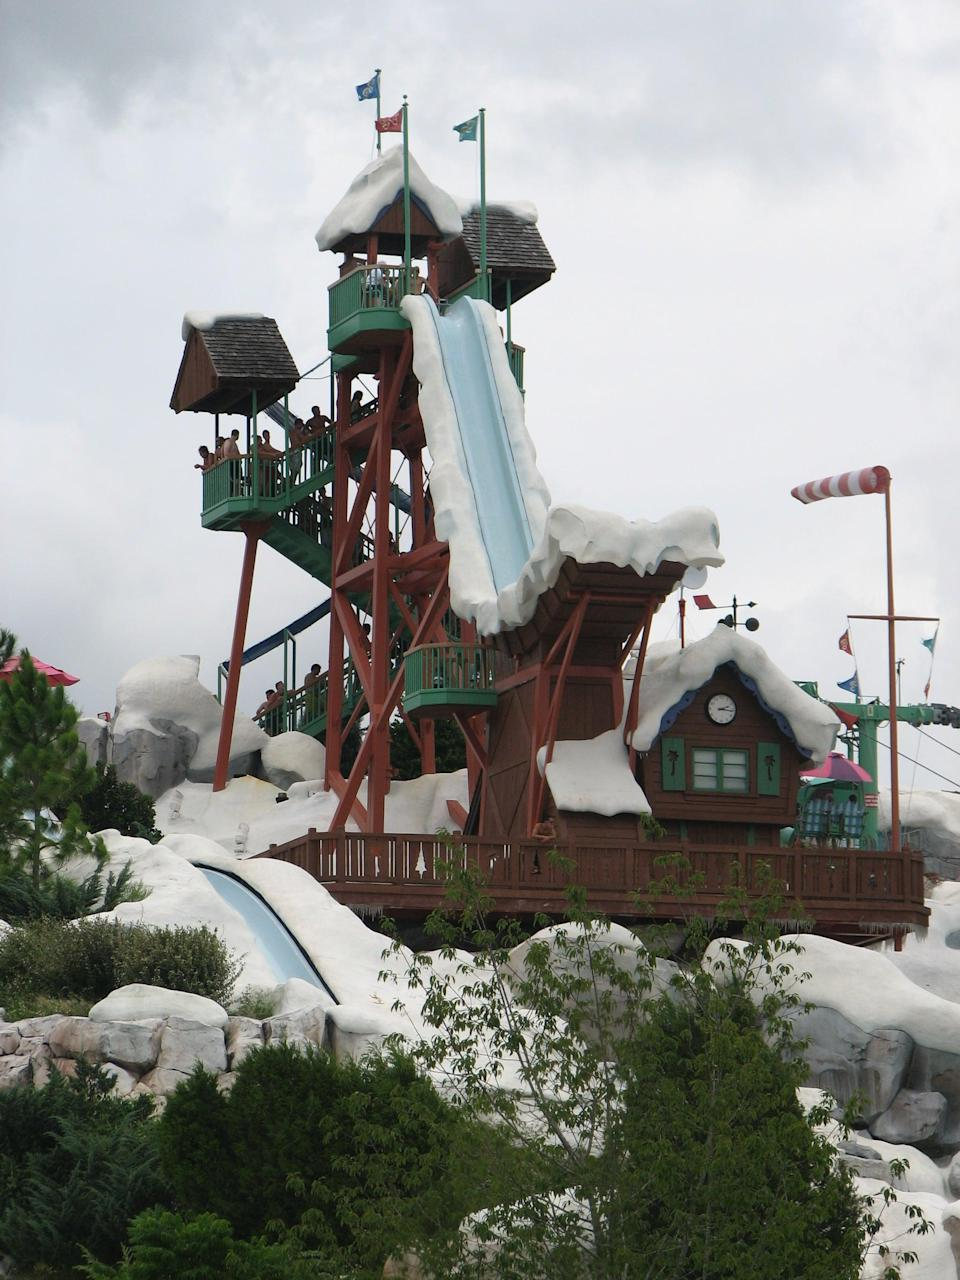 """<p>""""Typhoon Lagoon, Blizzard Beach . . . Downtown Disney is also a great place to spend an evening perusing the shops and getting dinner. Just be sure you're prepared for a long walk!"""" - <a href=""""http://www.quora.com/Michael-Lee-27"""" class=""""link rapid-noclick-resp"""" rel=""""nofollow noopener"""" target=""""_blank"""" data-ylk=""""slk:Quora user Michael Lee"""">Quora user Michael Lee</a></p>"""